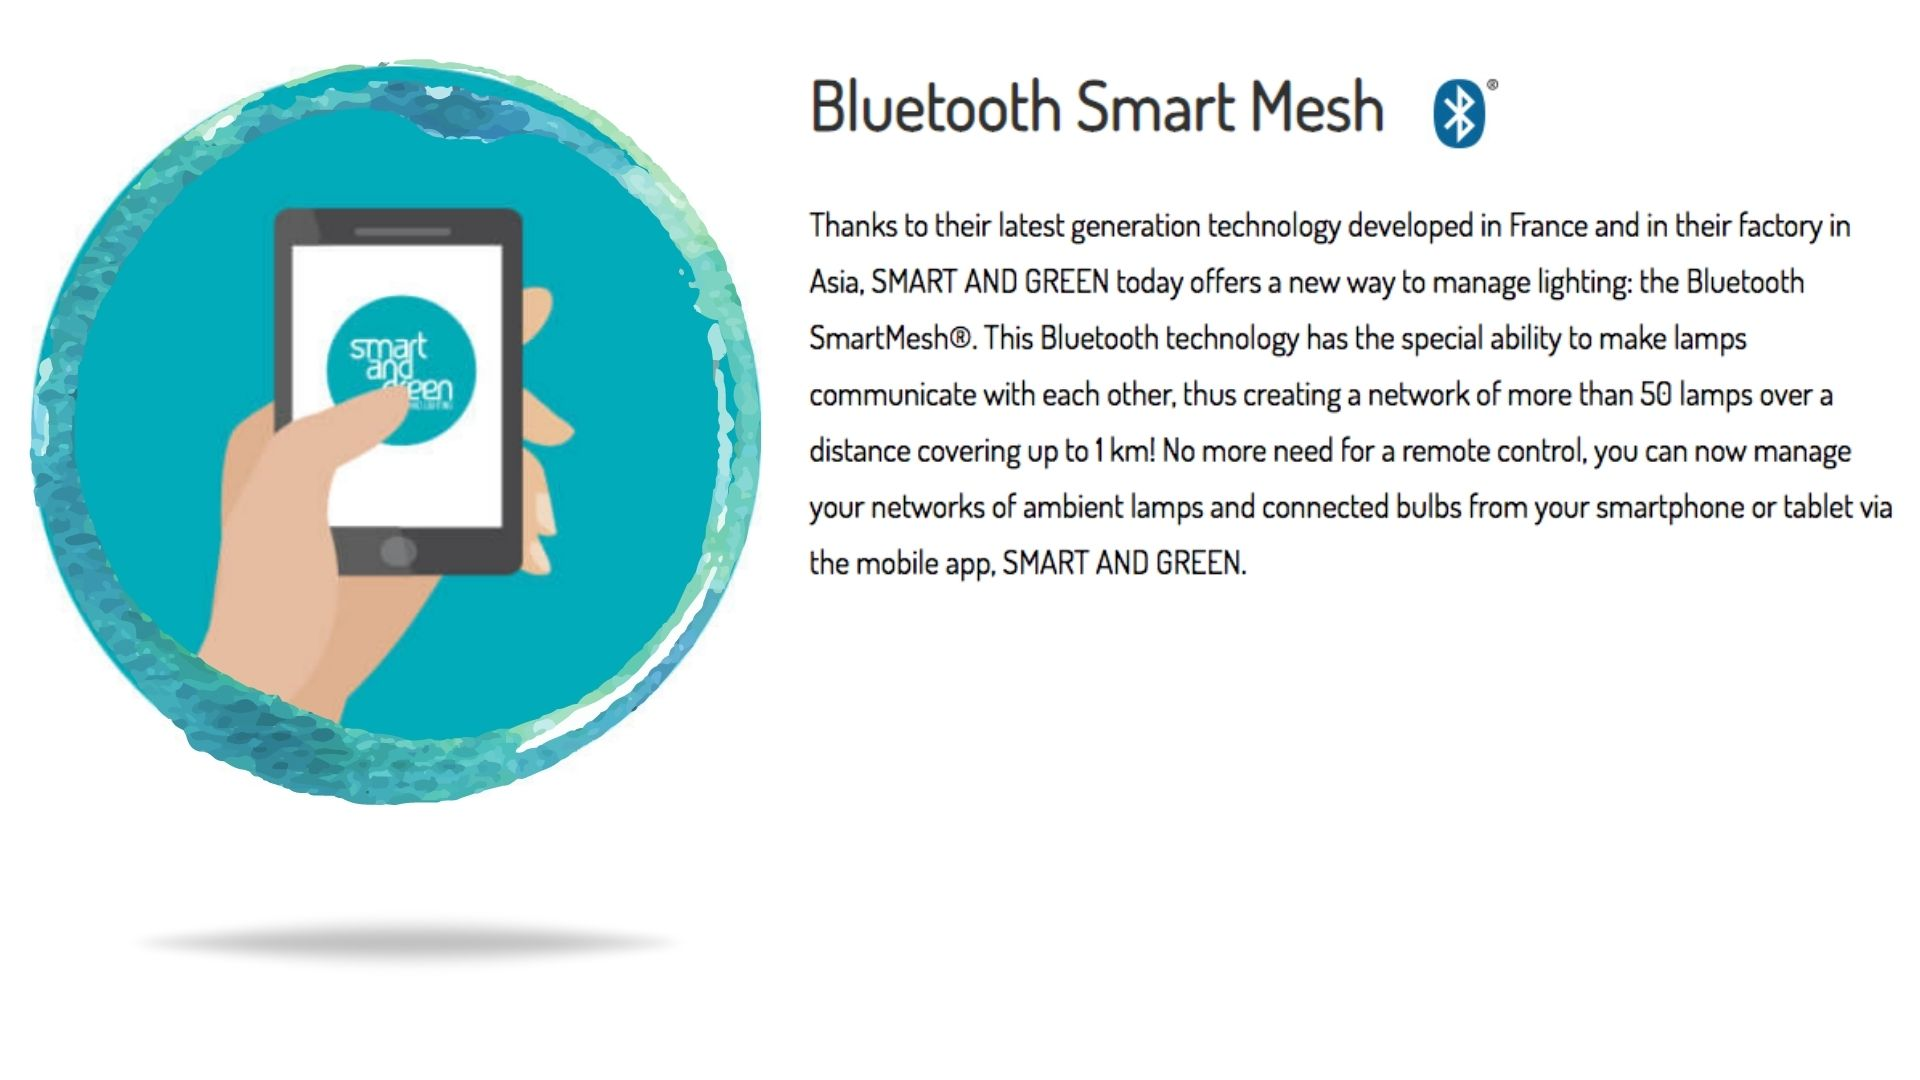 smart-and-green-bluetooth-mesh